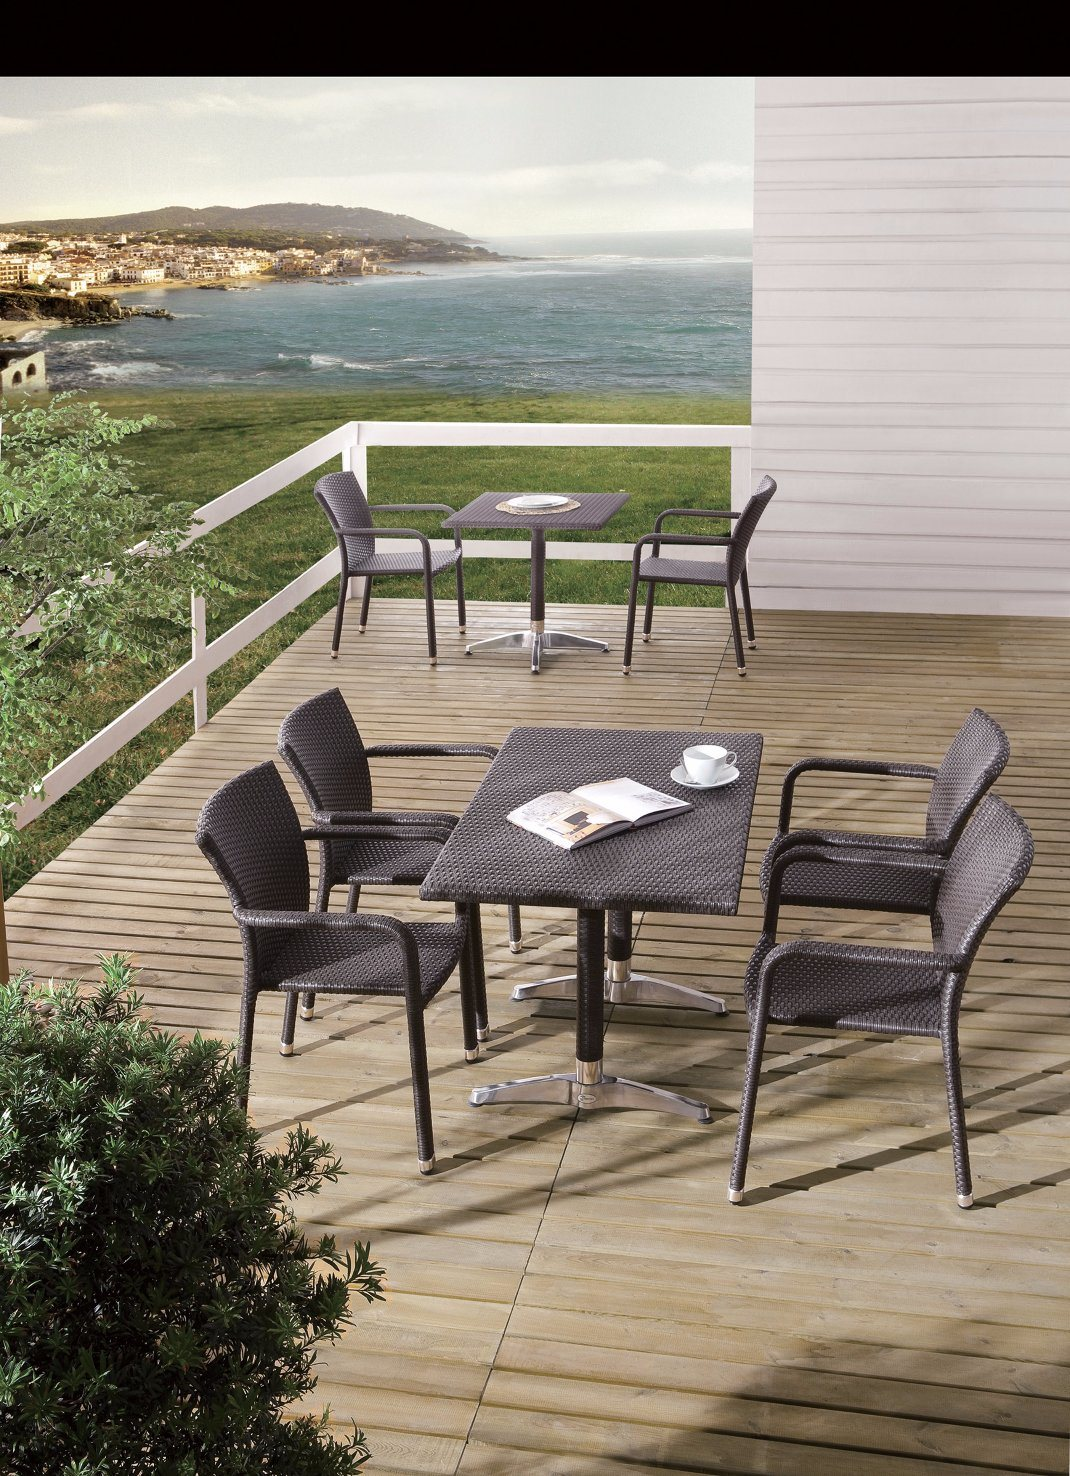 Outdoor Wicker Patio Furniture Carlos Dining Set Garden Rattan Chairs Table (J374BR)